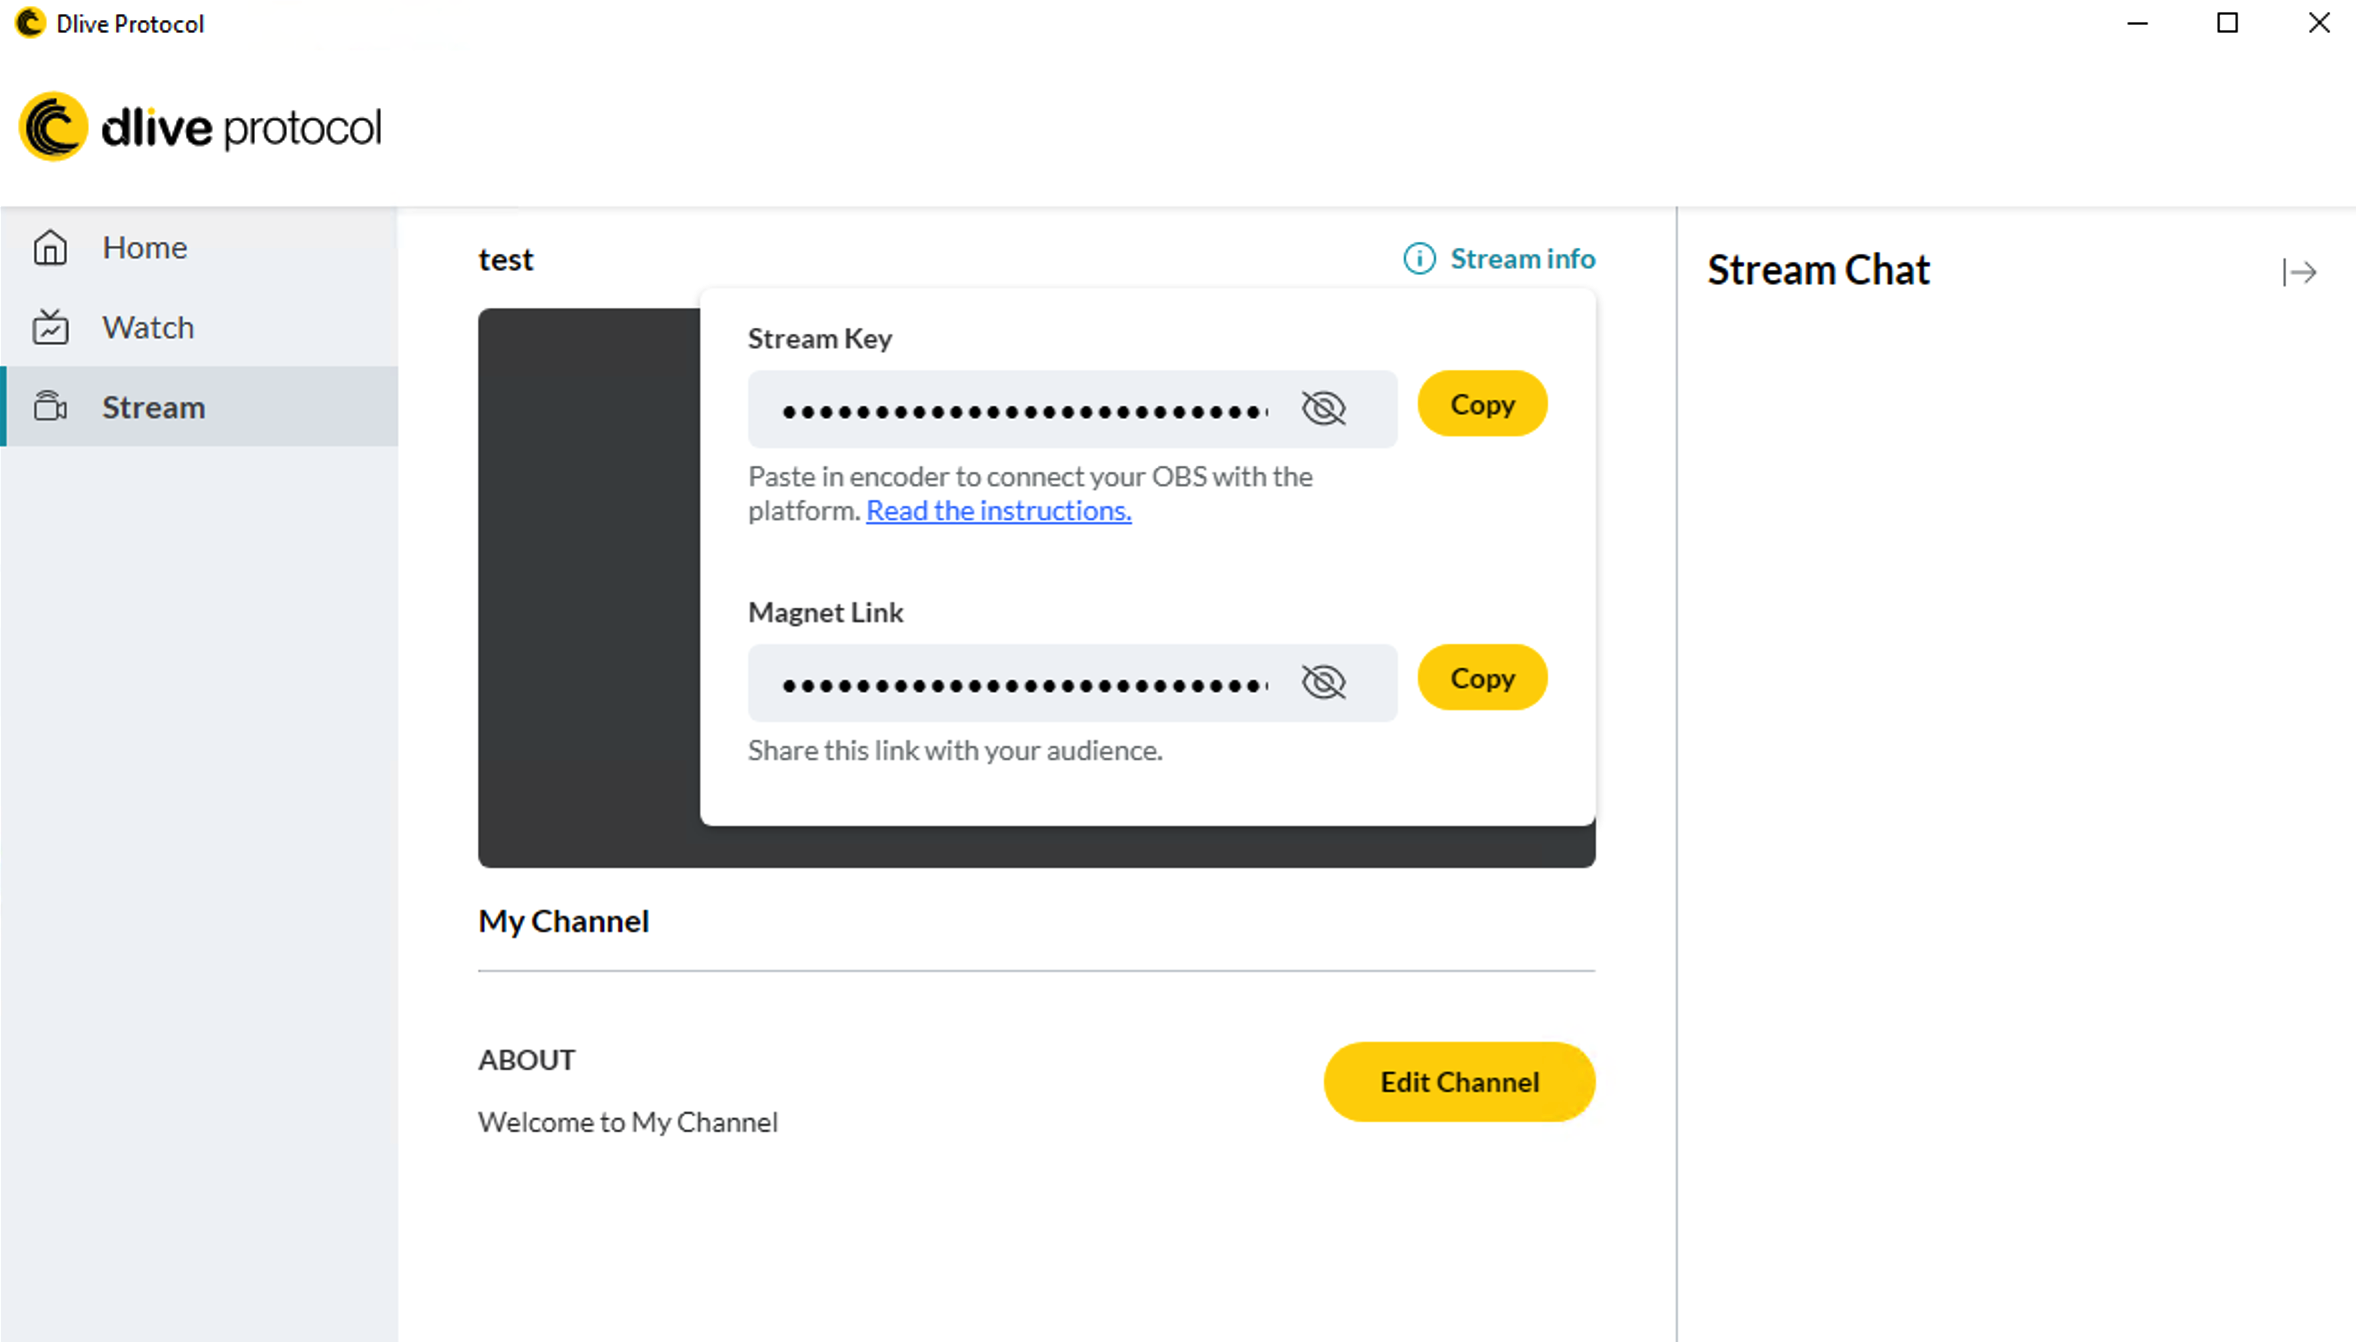 A stream key and corresponding magnet link are generated for a new channel.